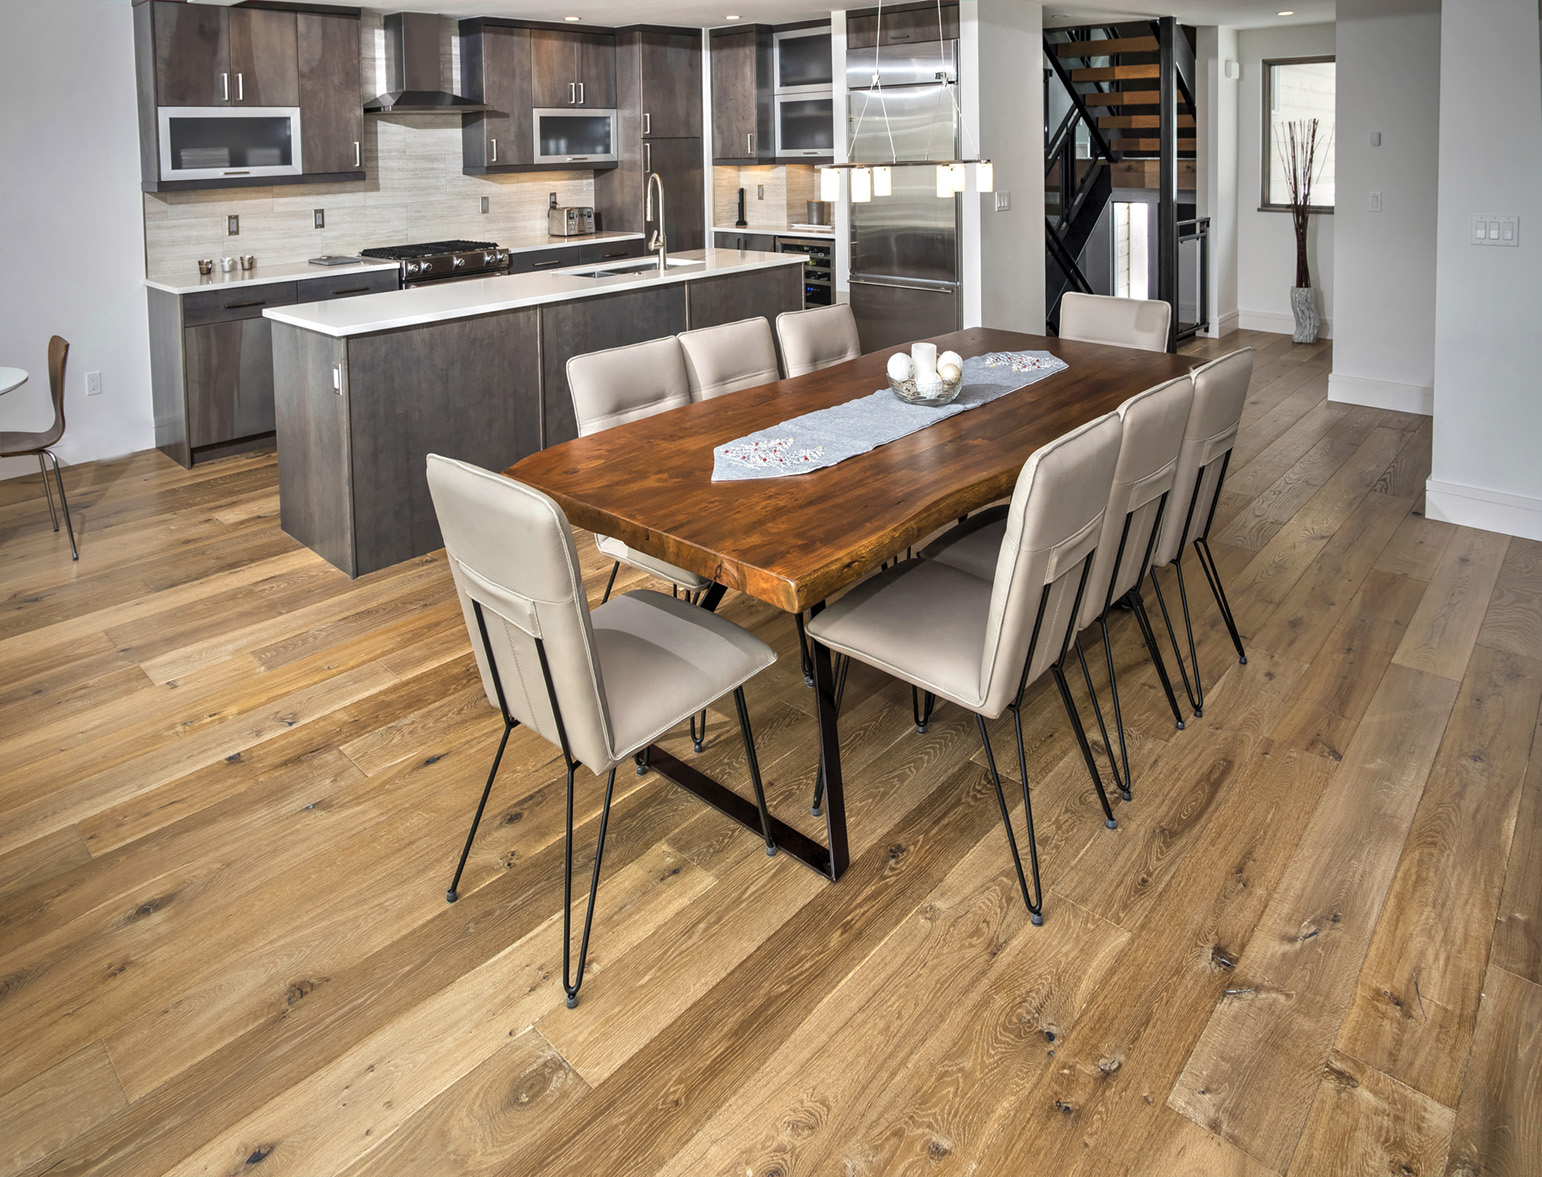 Creative Floors | One Stop Floor Shopping in Edwards, CO